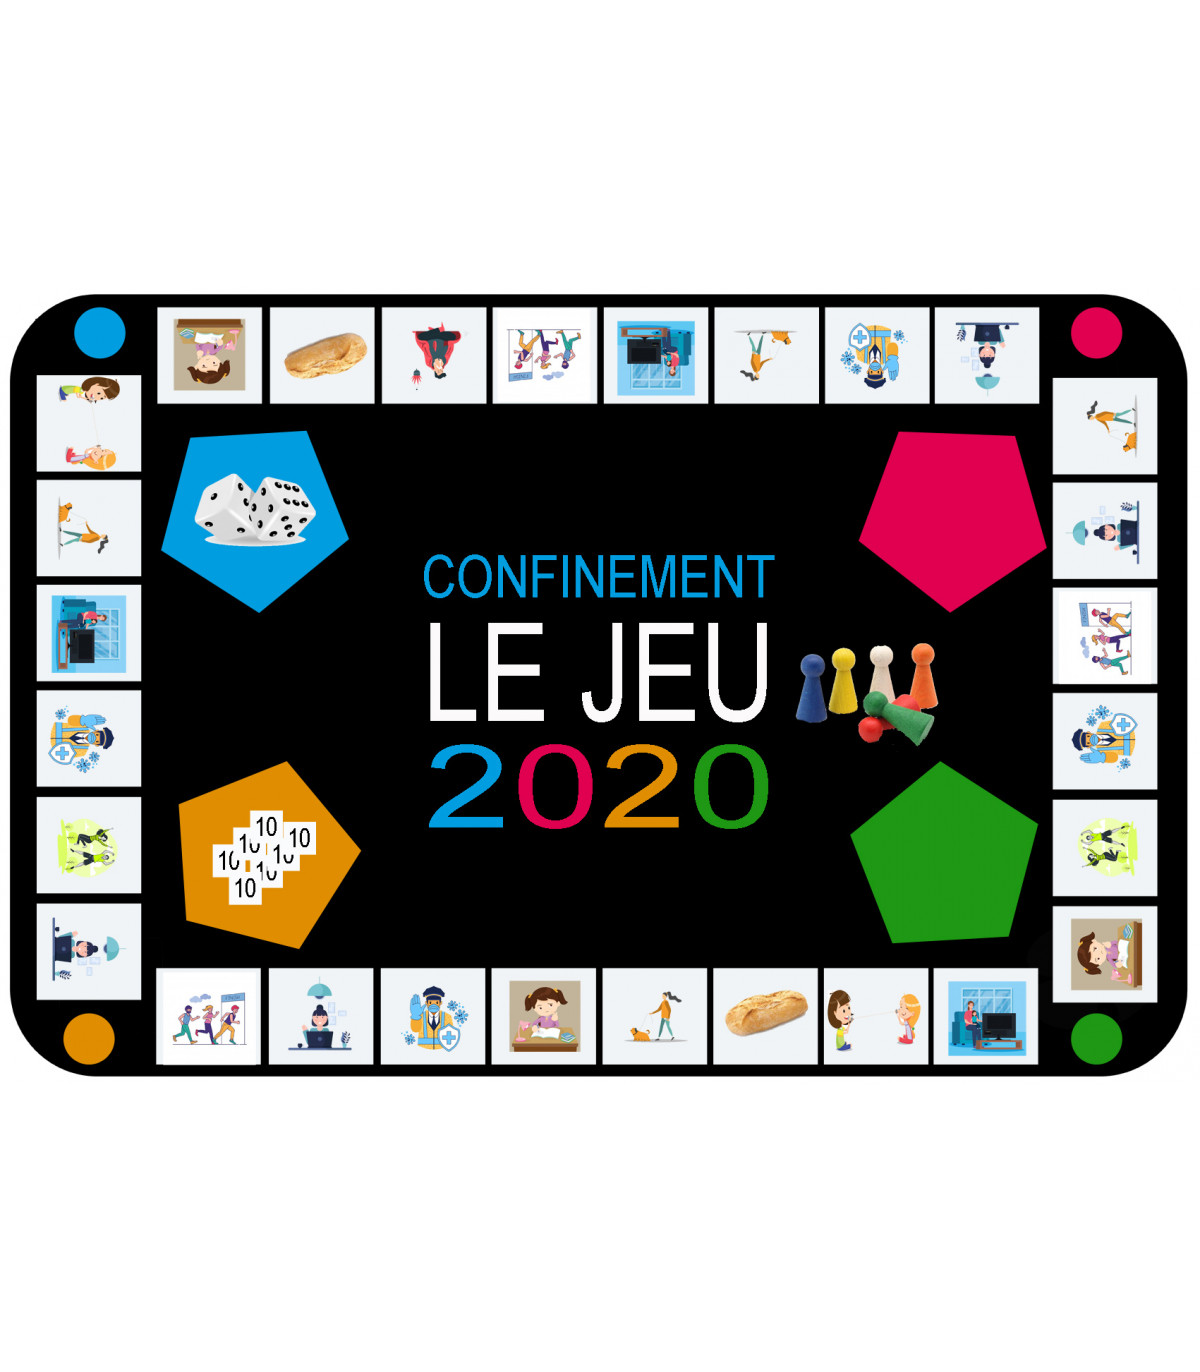 Jeu du confinement coronavirus